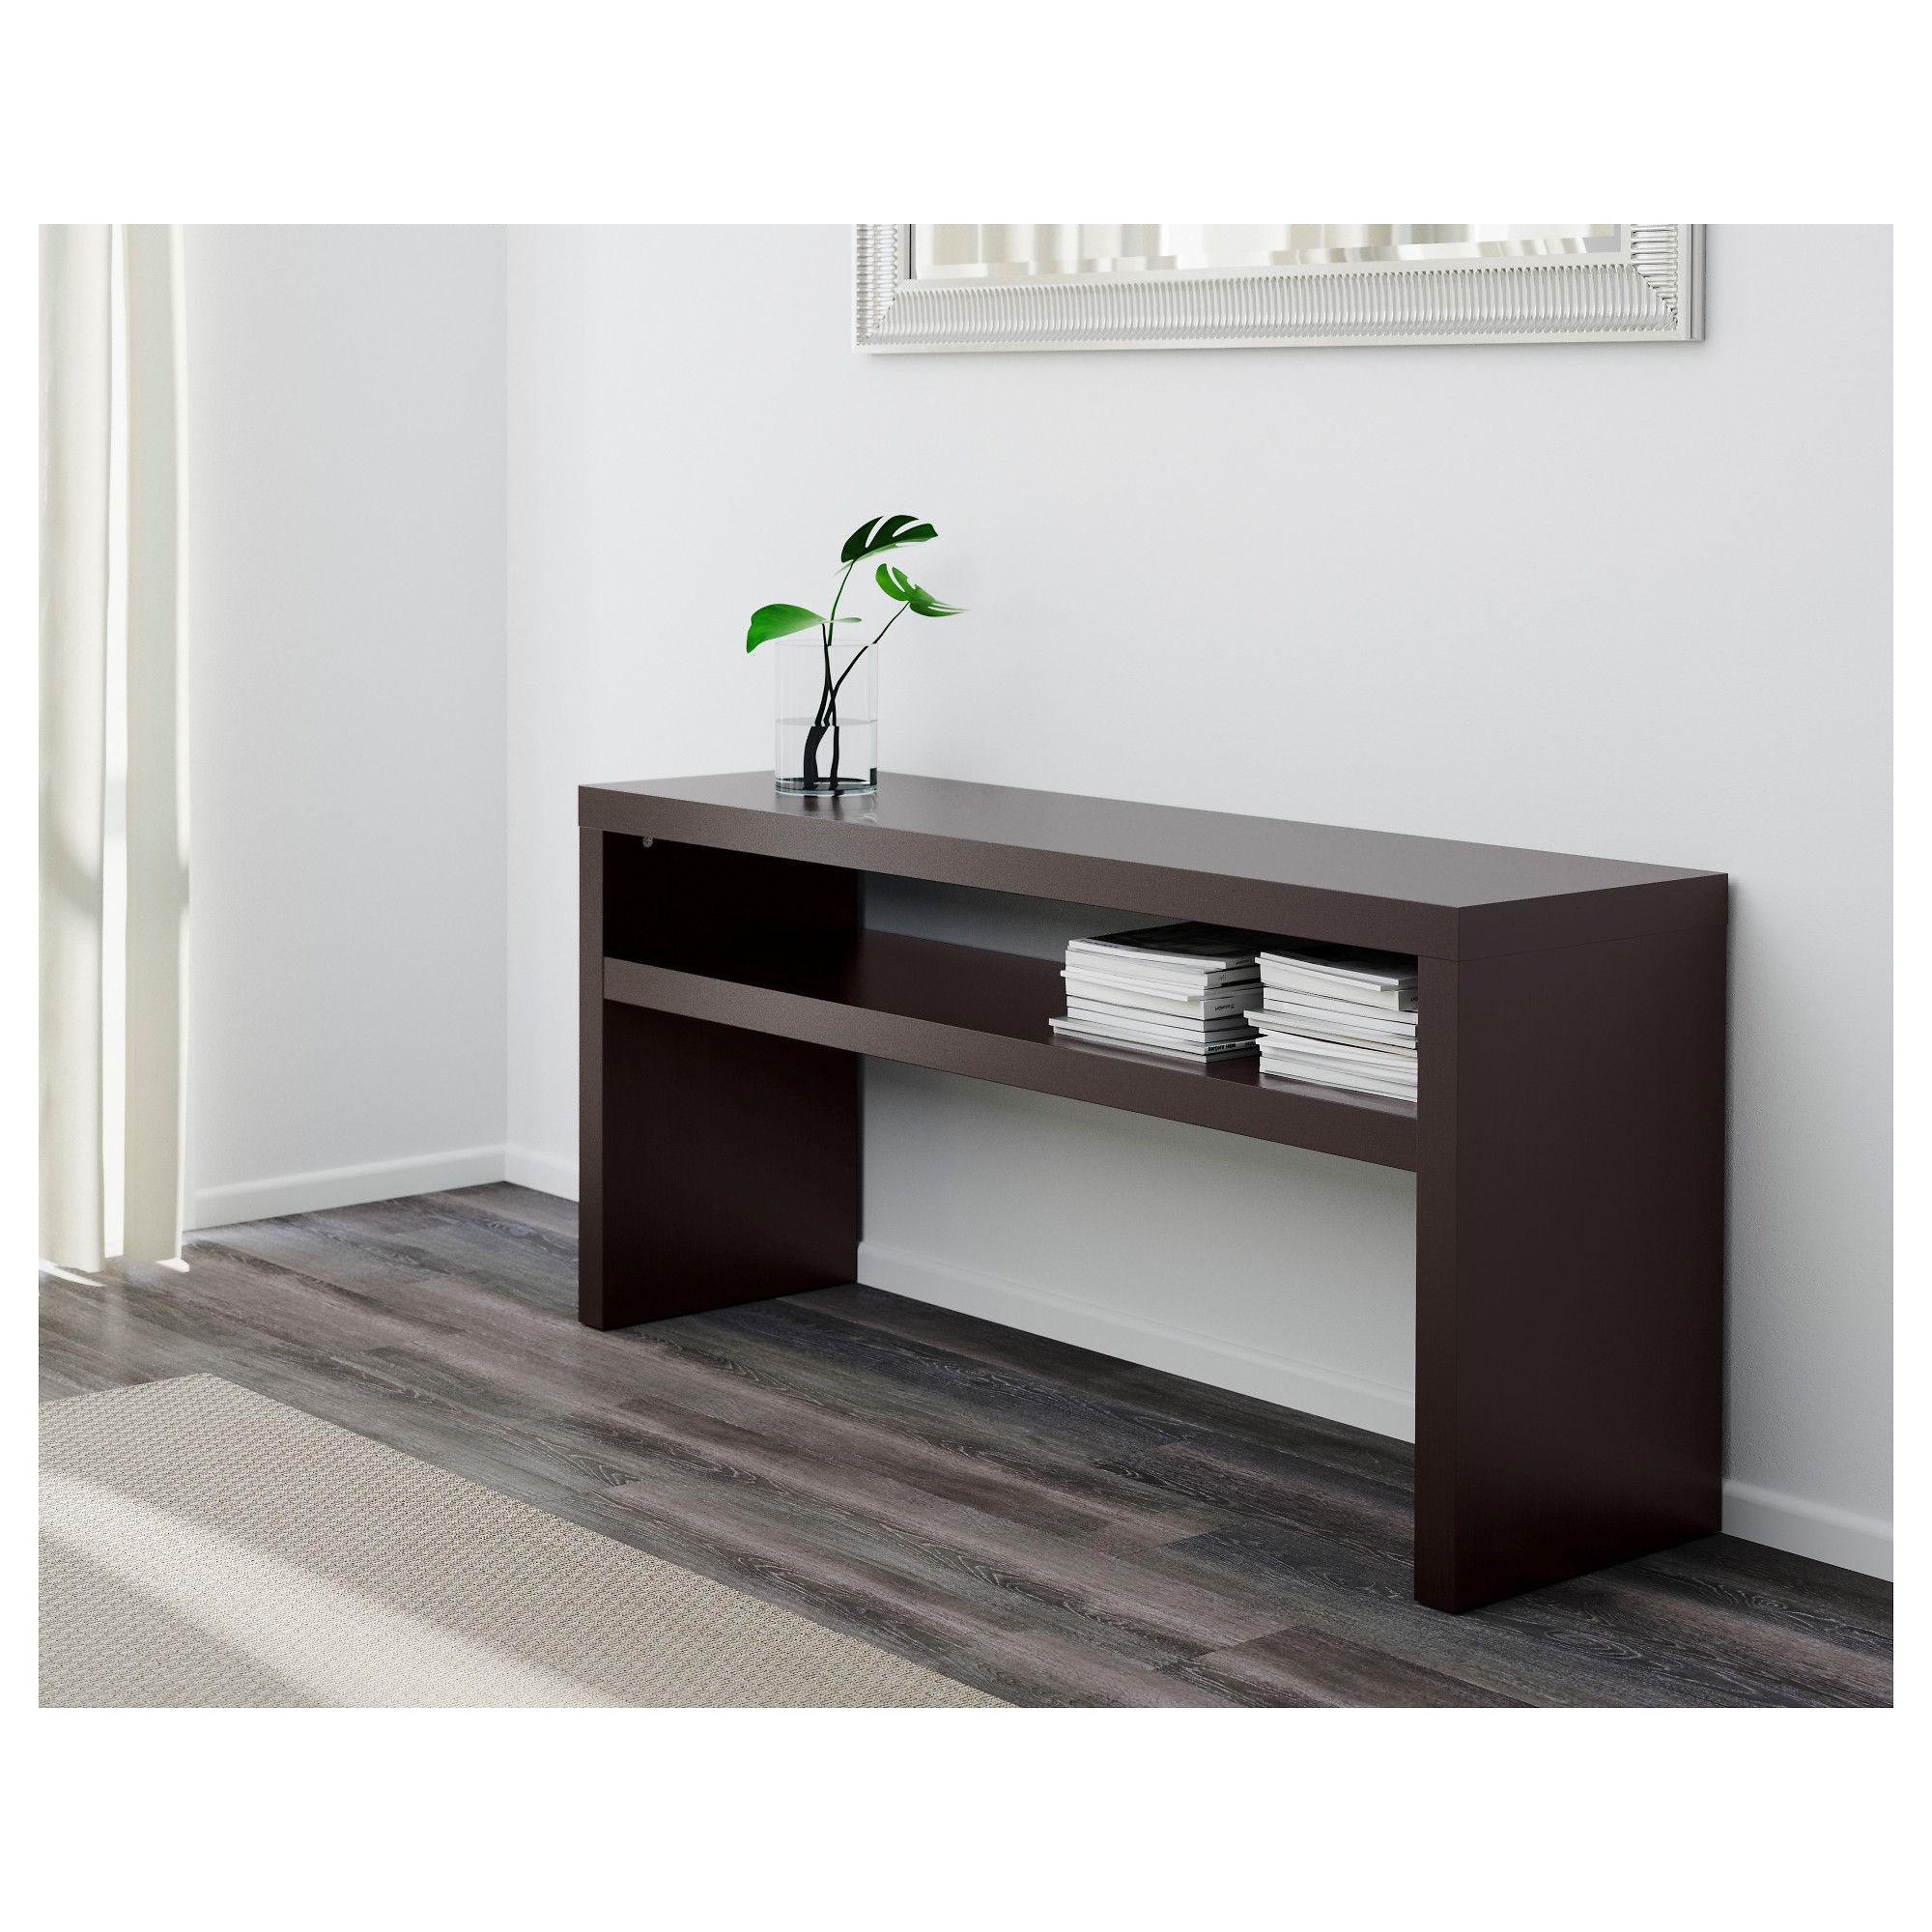 Tremendous Ikea Lack Console Table Black Brown Decor Ikea Sofa Gamerscity Chair Design For Home Gamerscityorg